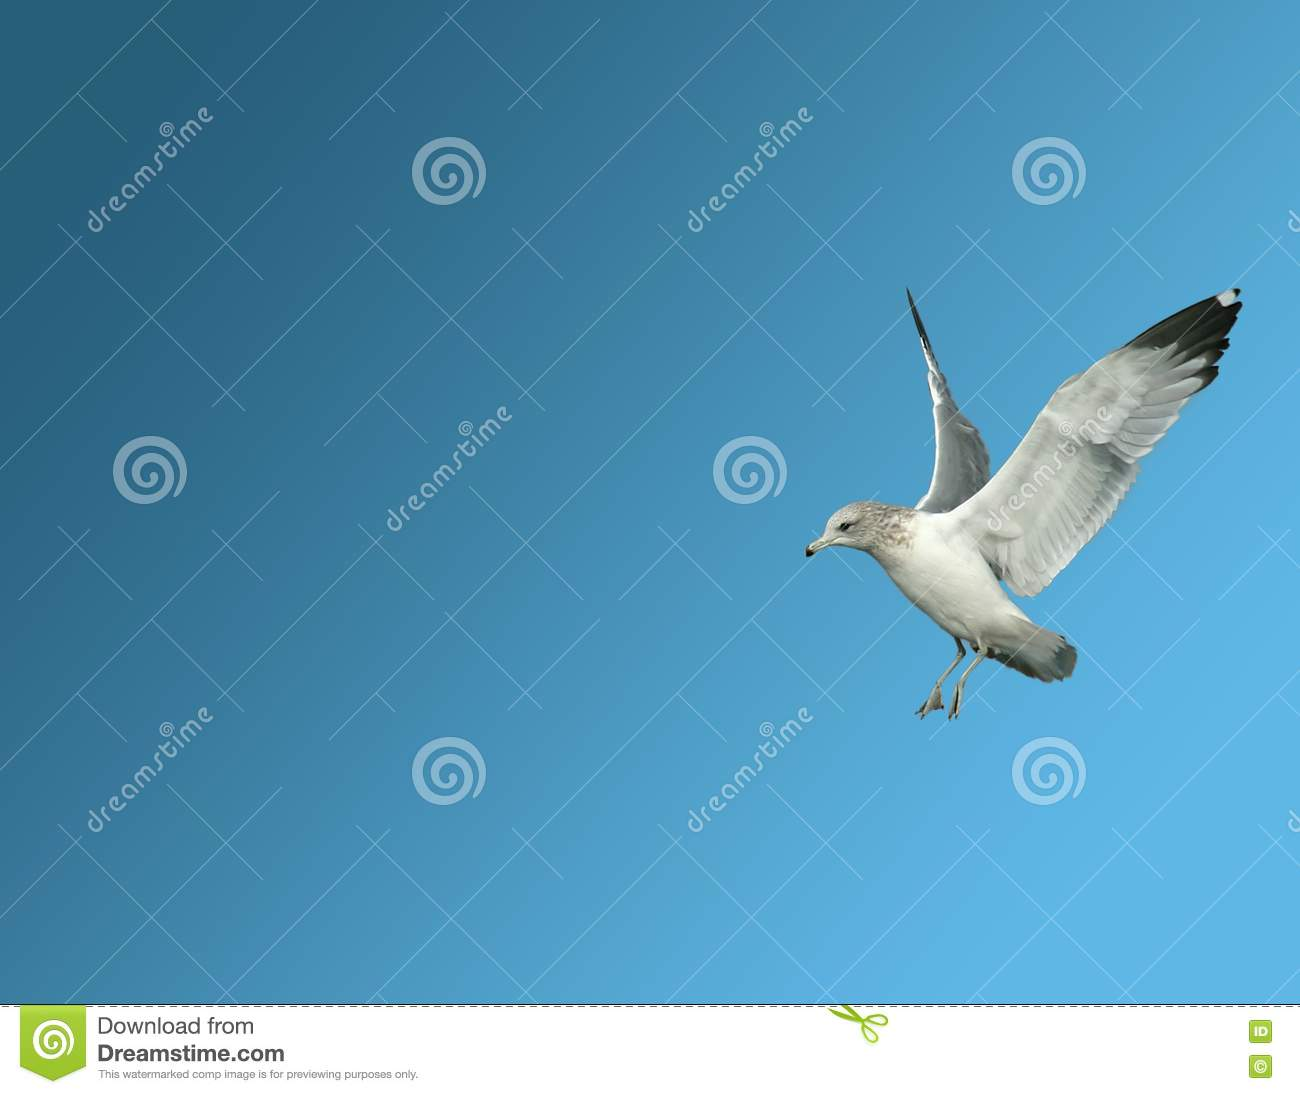 Seagull ready to land